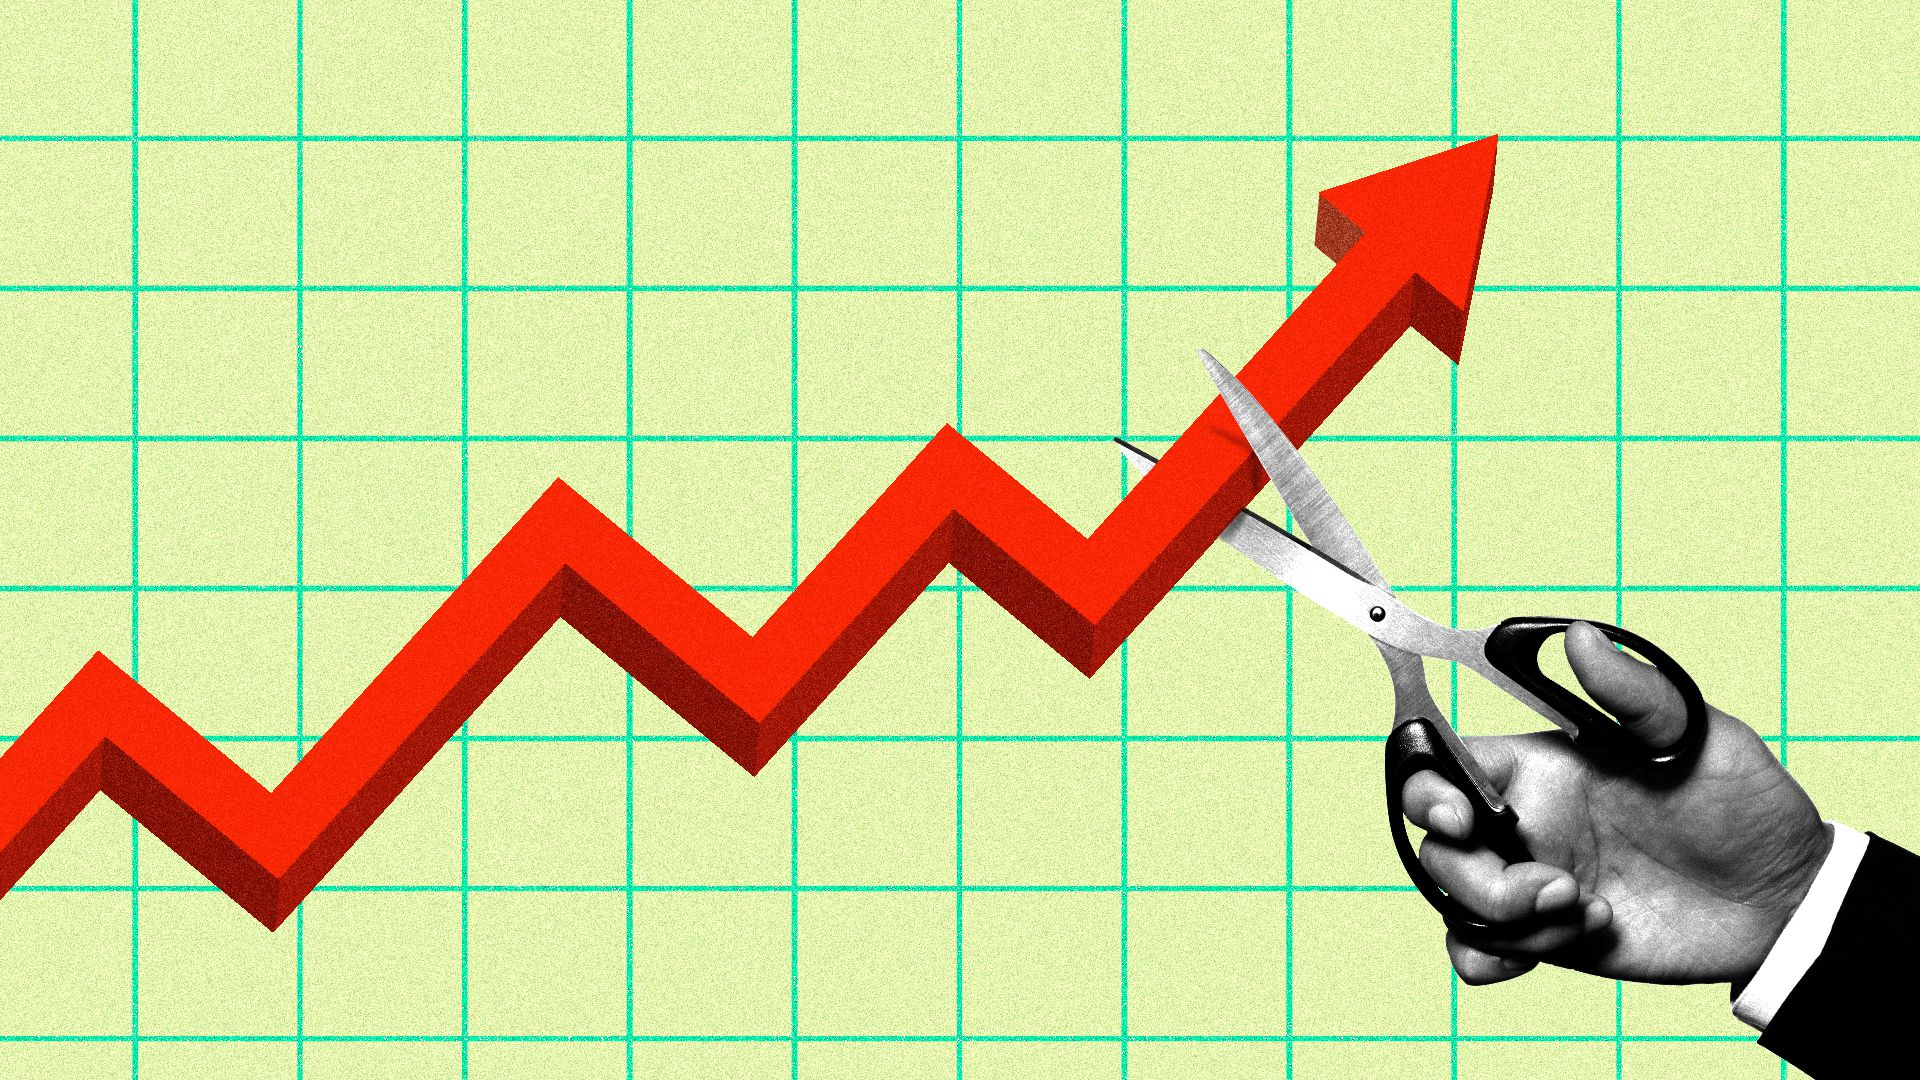 Illustration of graph showing stock arrowing upwards being cut by a hand holding scissors